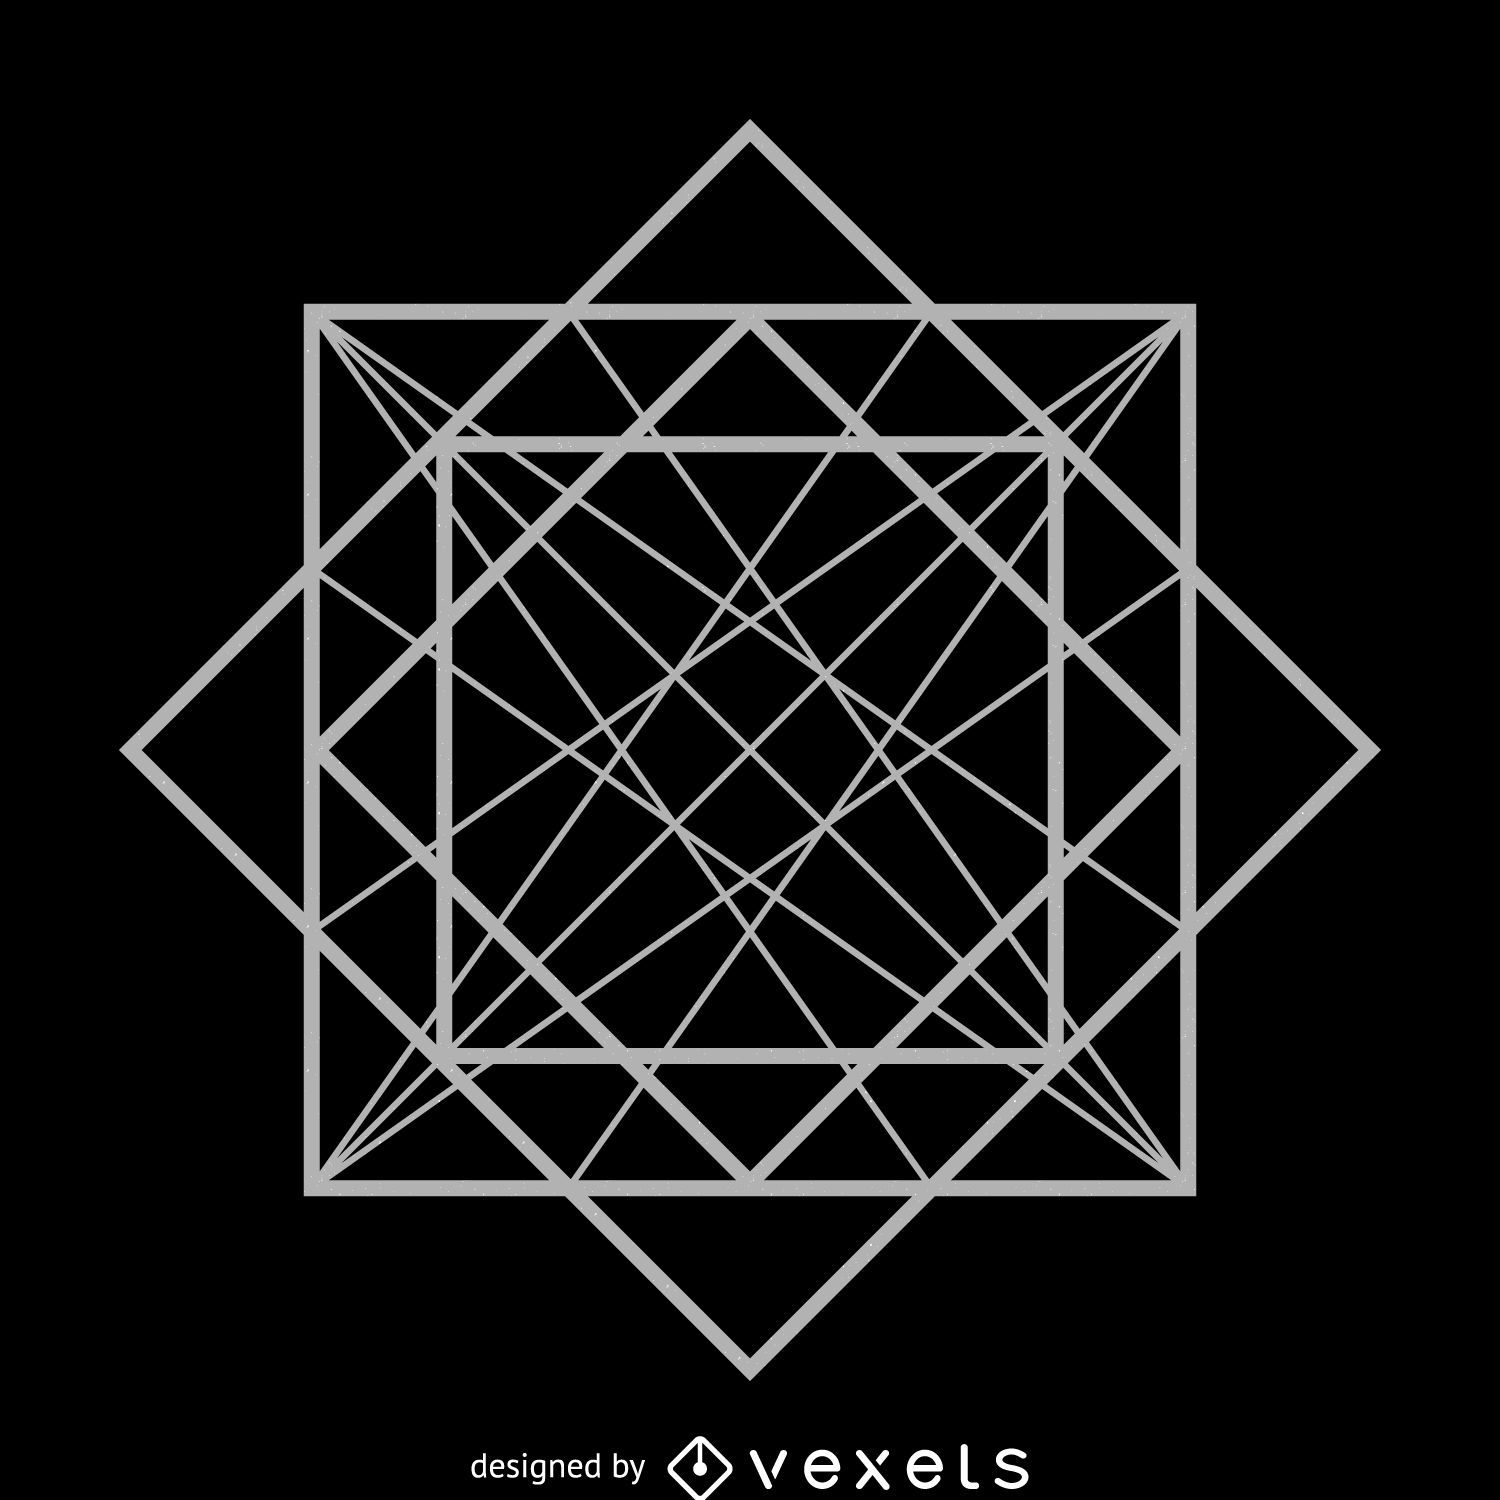 download Oeuvres